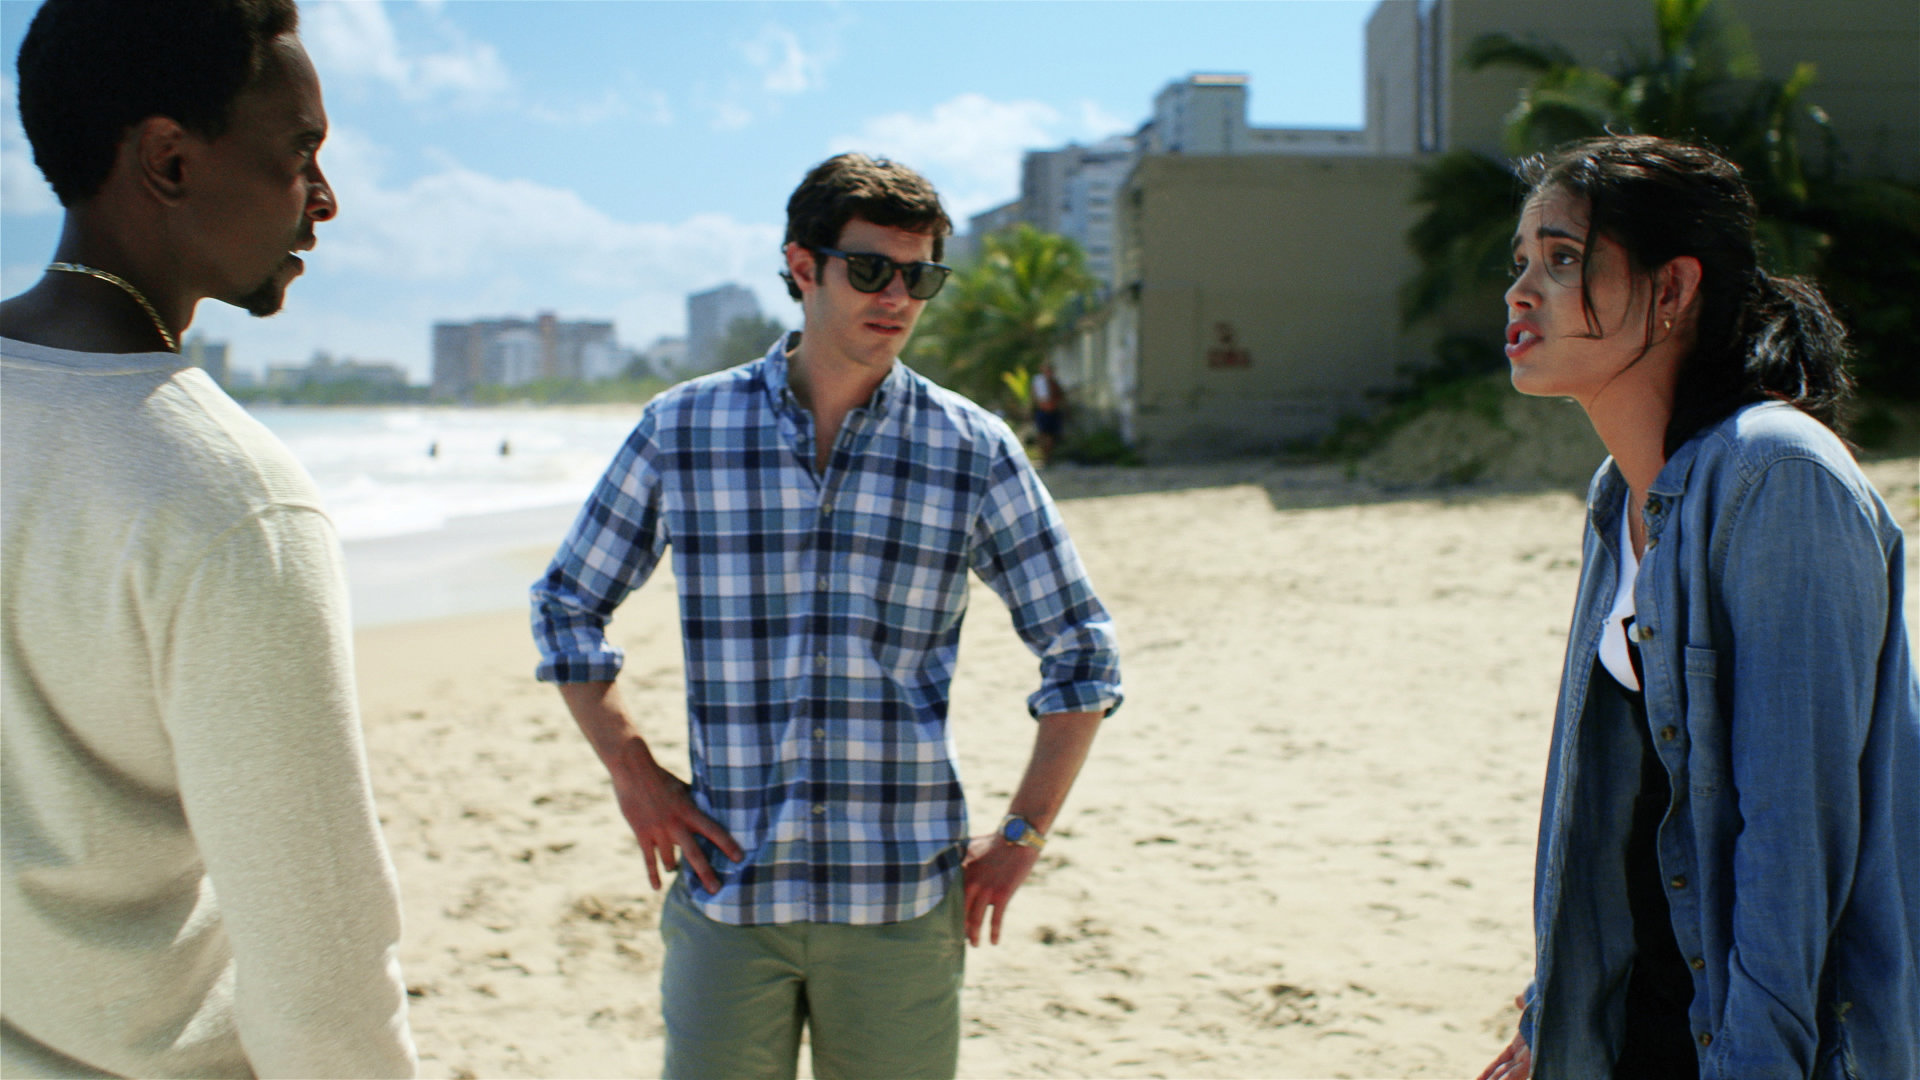 Adam Brody - Startup Embed 1